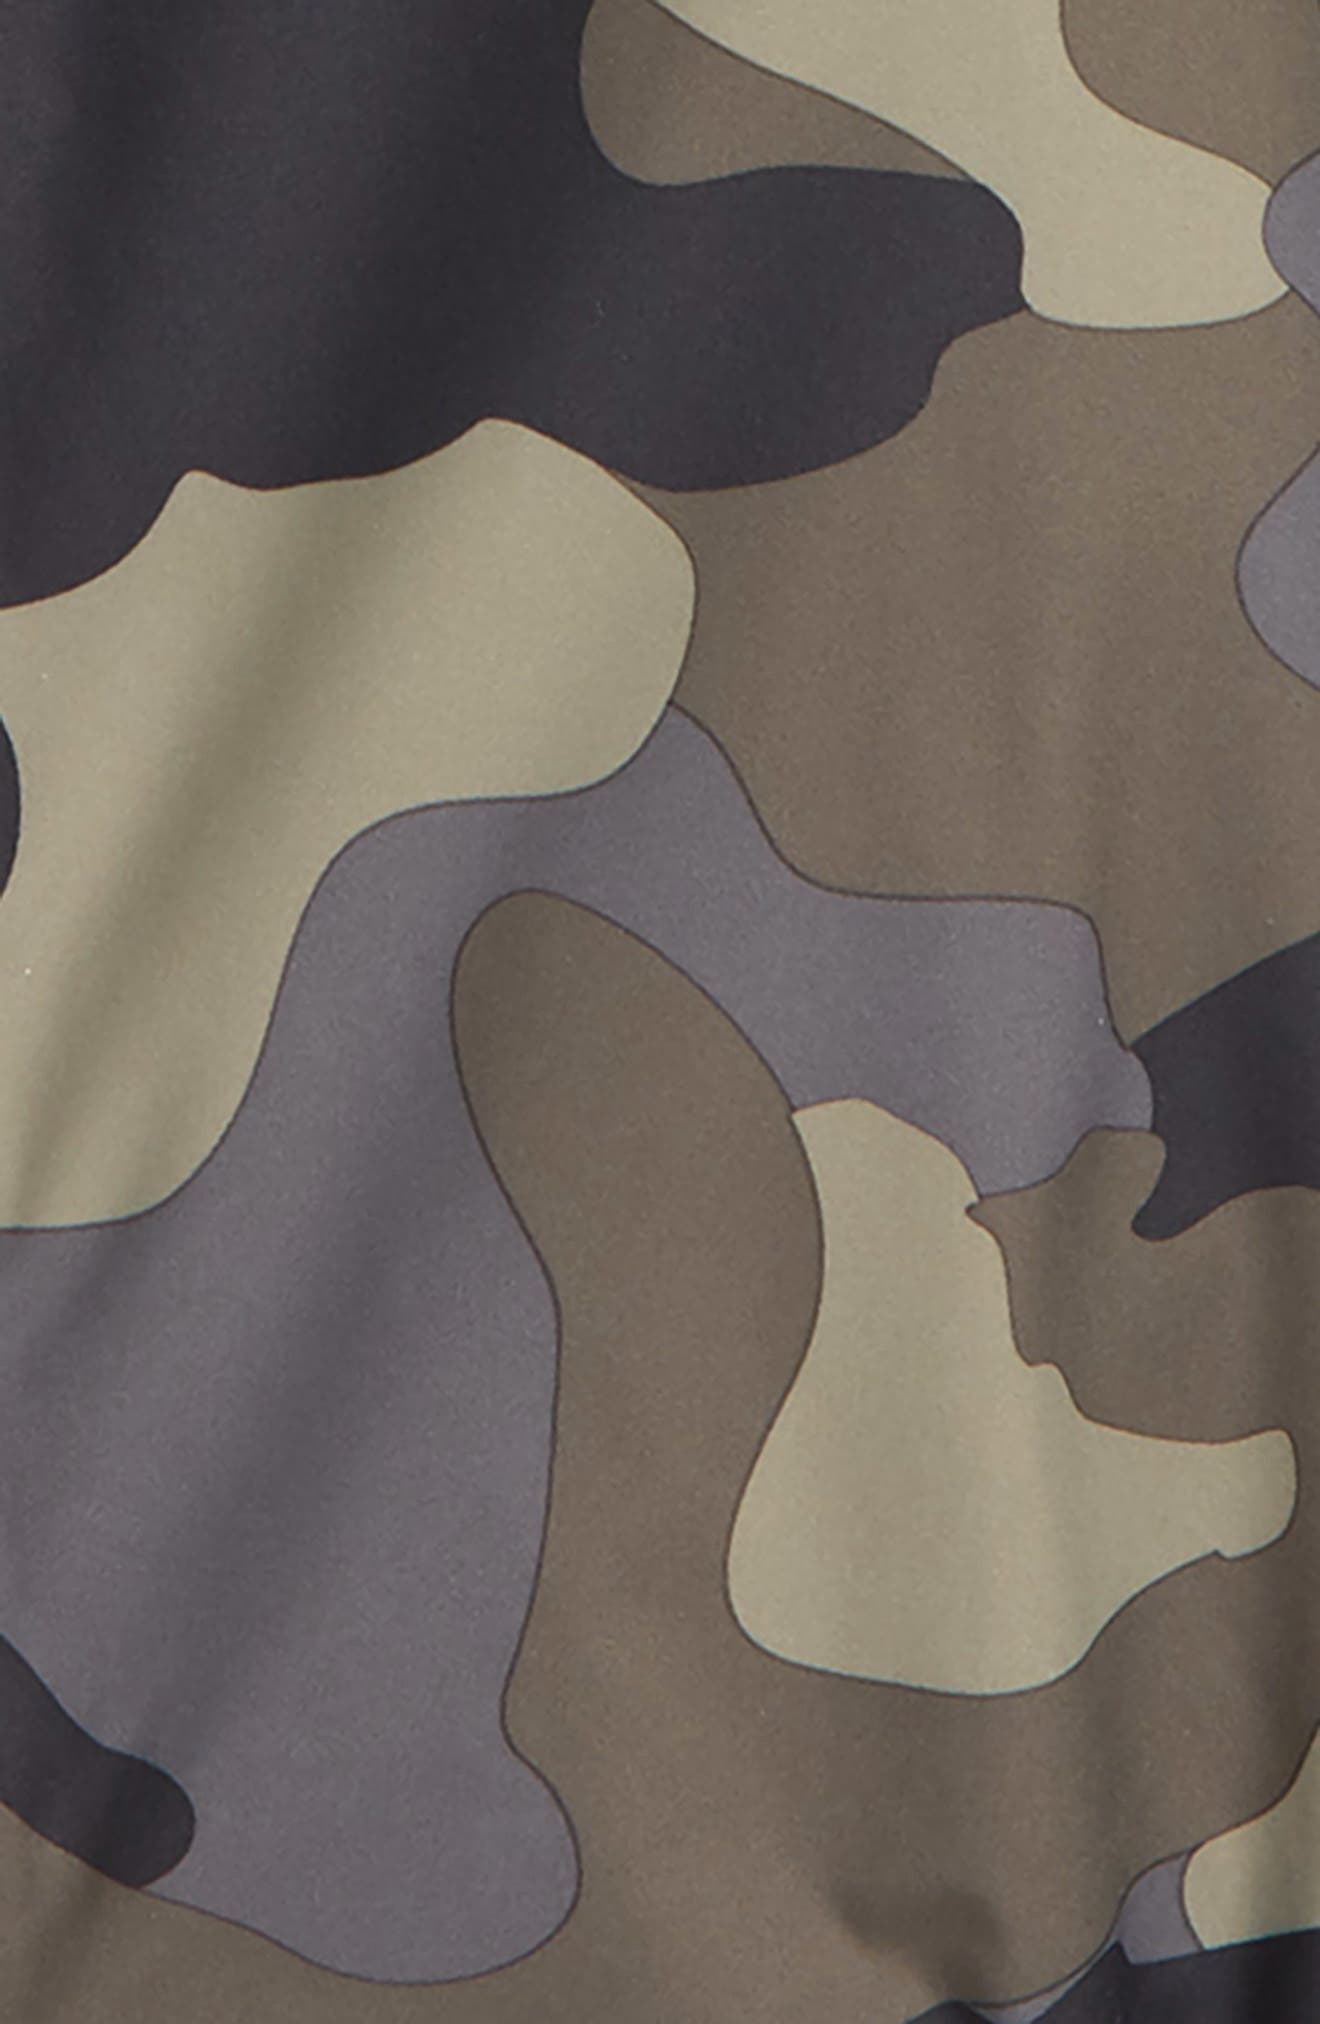 Tailout Hooded Rain Jacket,                             Alternate thumbnail 2, color,                             TAUPE/ GREEN CAMO PRINT